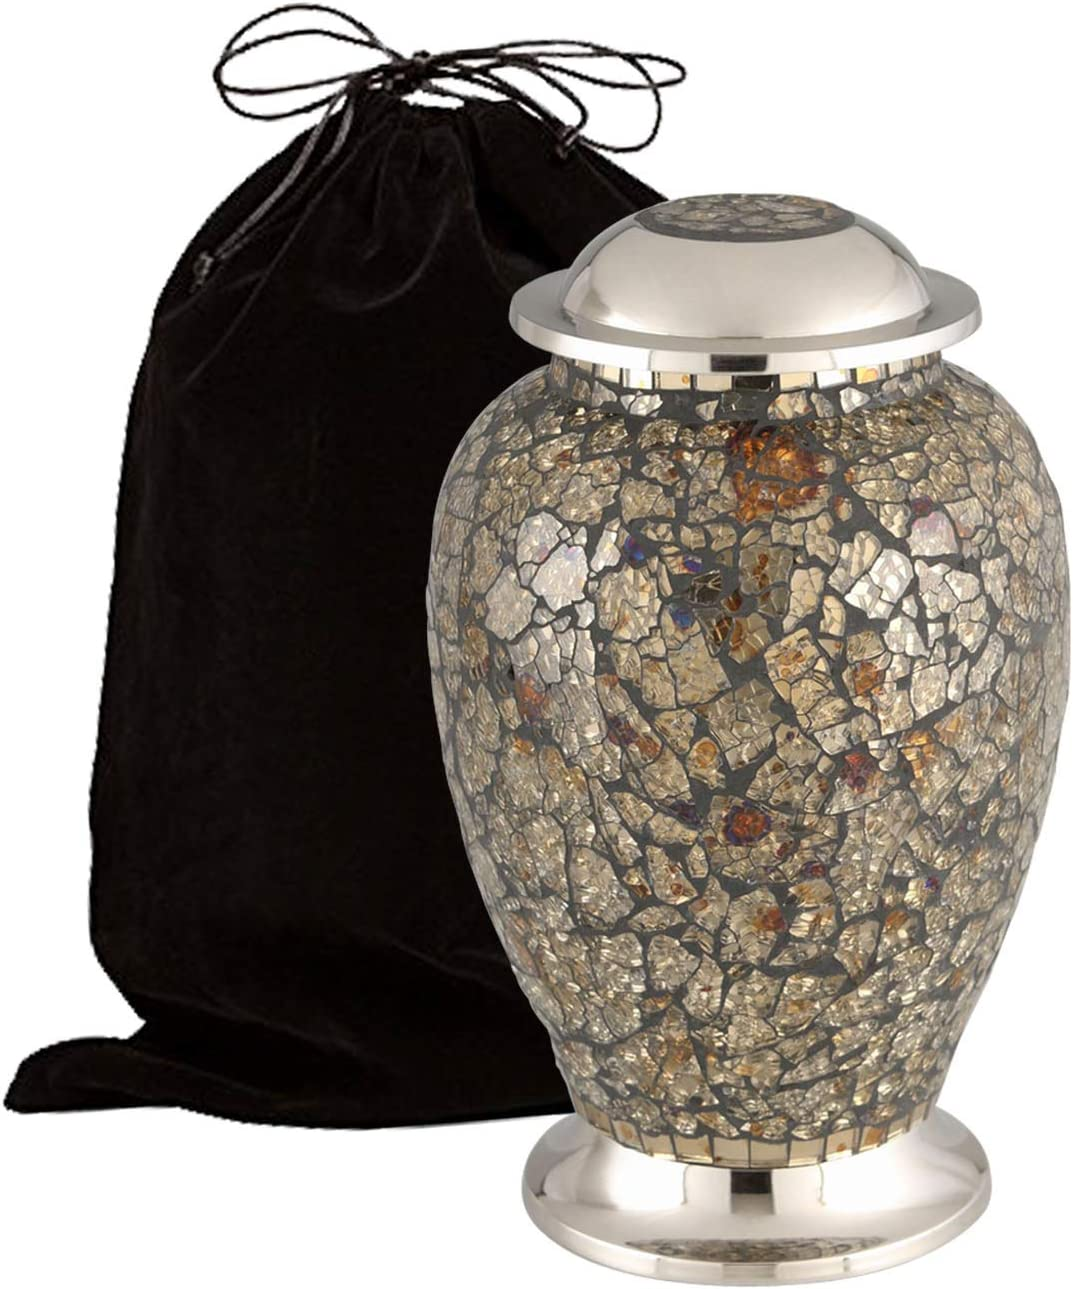 Eternitymart Mosaic Cracked Glass Cremation Urn for Human Ashes - Adult Funeral Urn Handcrafted - Affordable Urn for Ashes - Large Urn Deal. (Gray Blue Yellow)